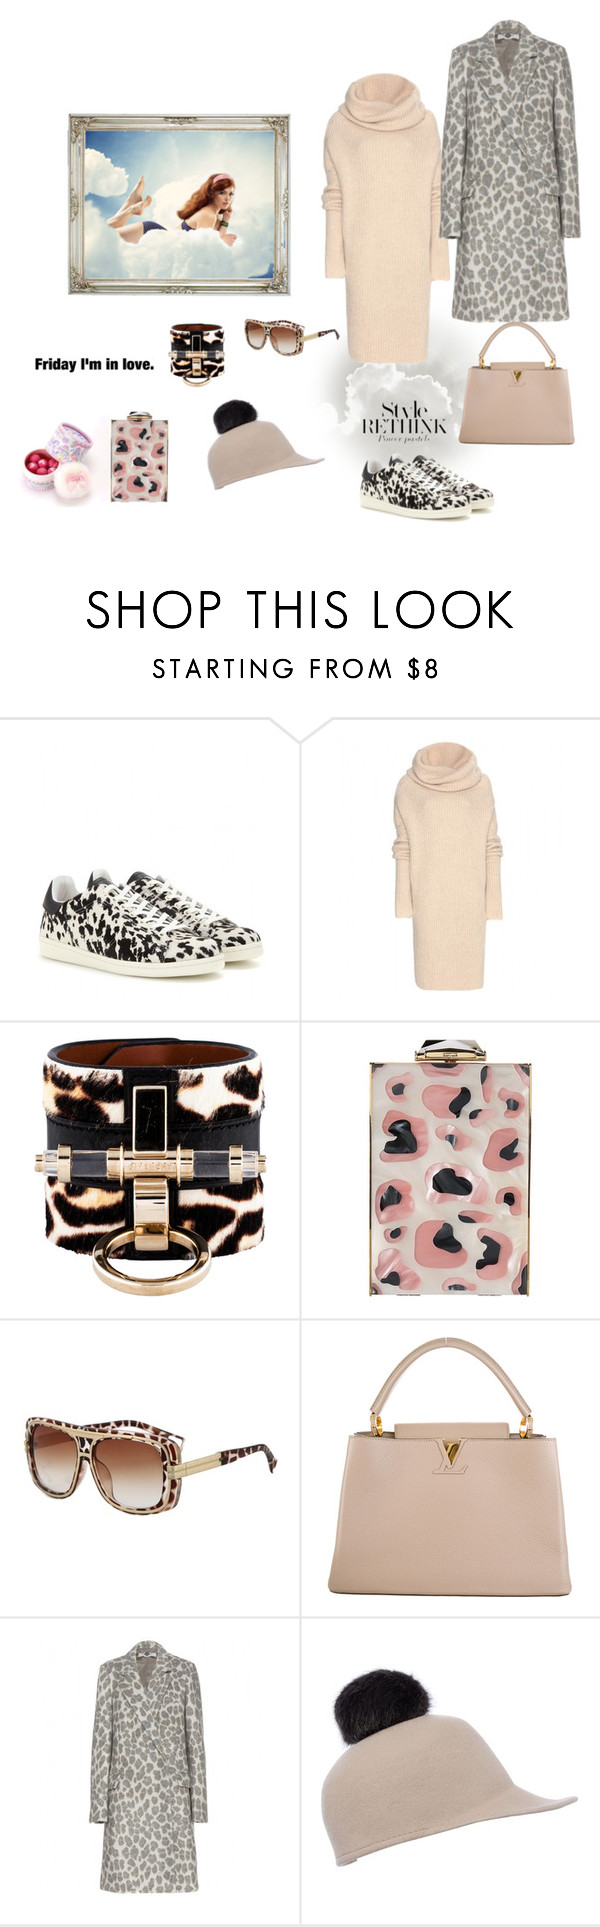 """""""finaly friday"""" by juliabachmann ❤ liked on Polyvore featuring Isabel Marant, Haider Ackermann, Givenchy, KOTUR, Louis Vuitton, STELLA McCARTNEY and Helene Berman"""